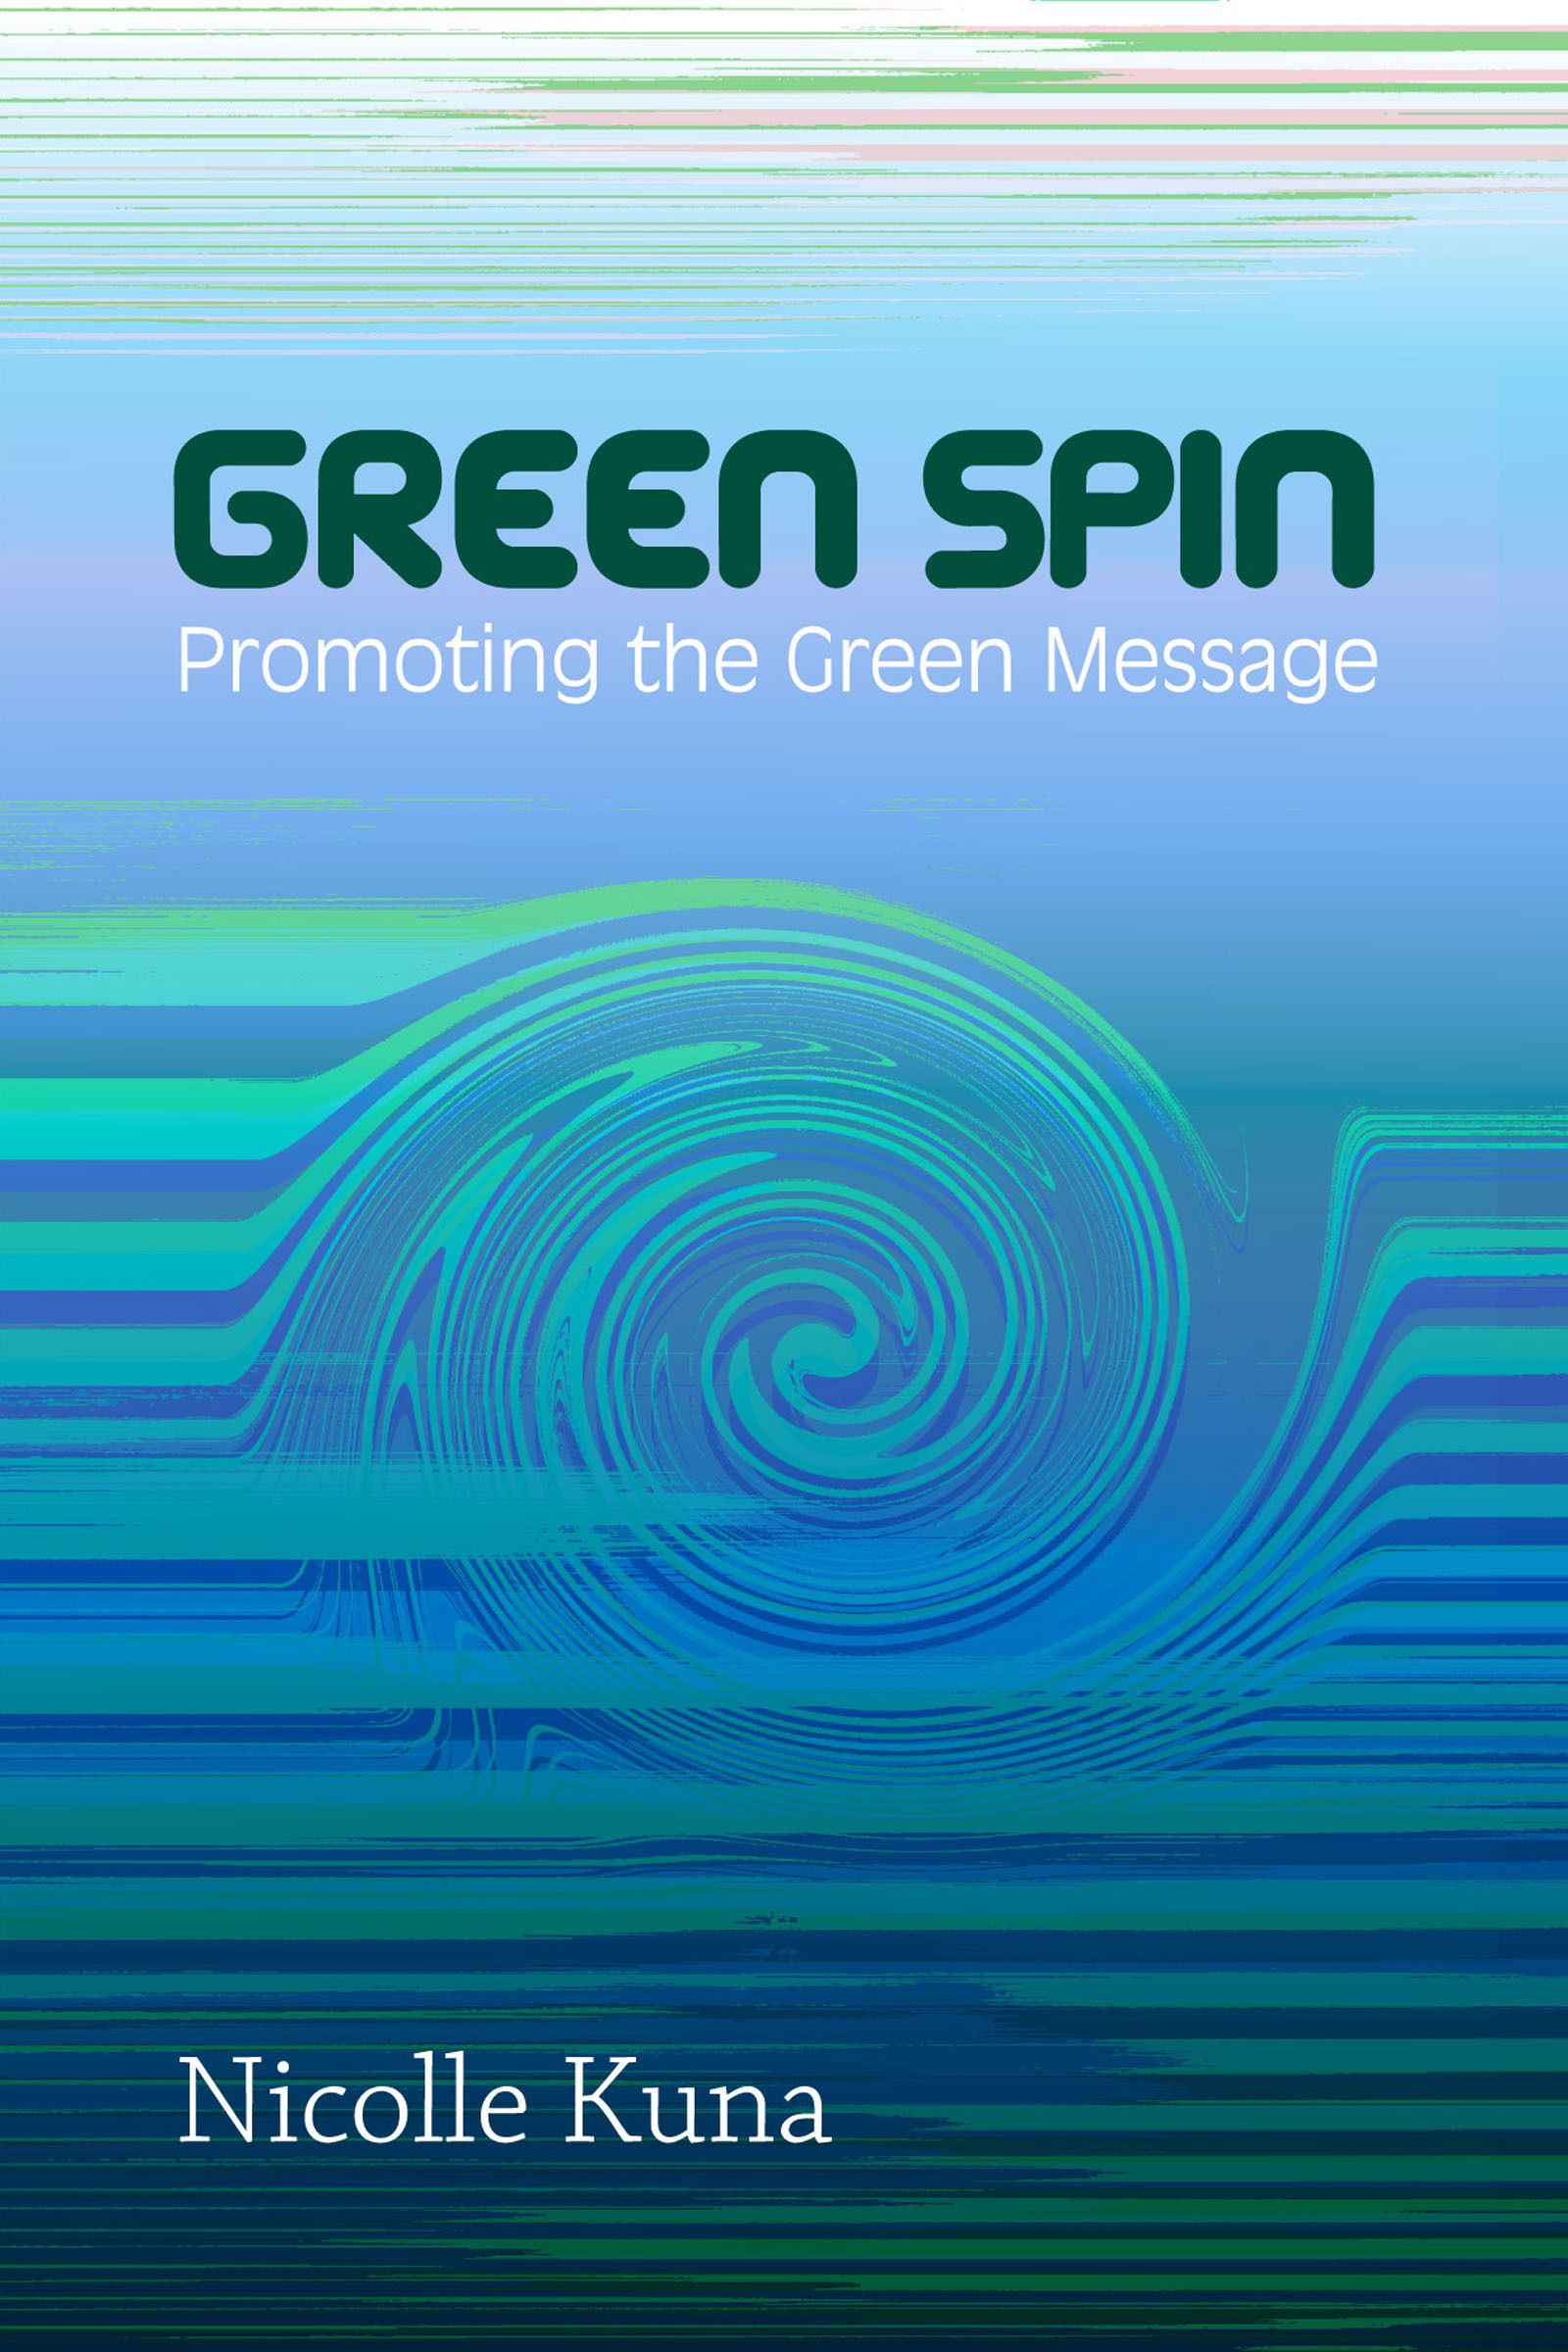 Green Spin (or) Promoting the Green Message